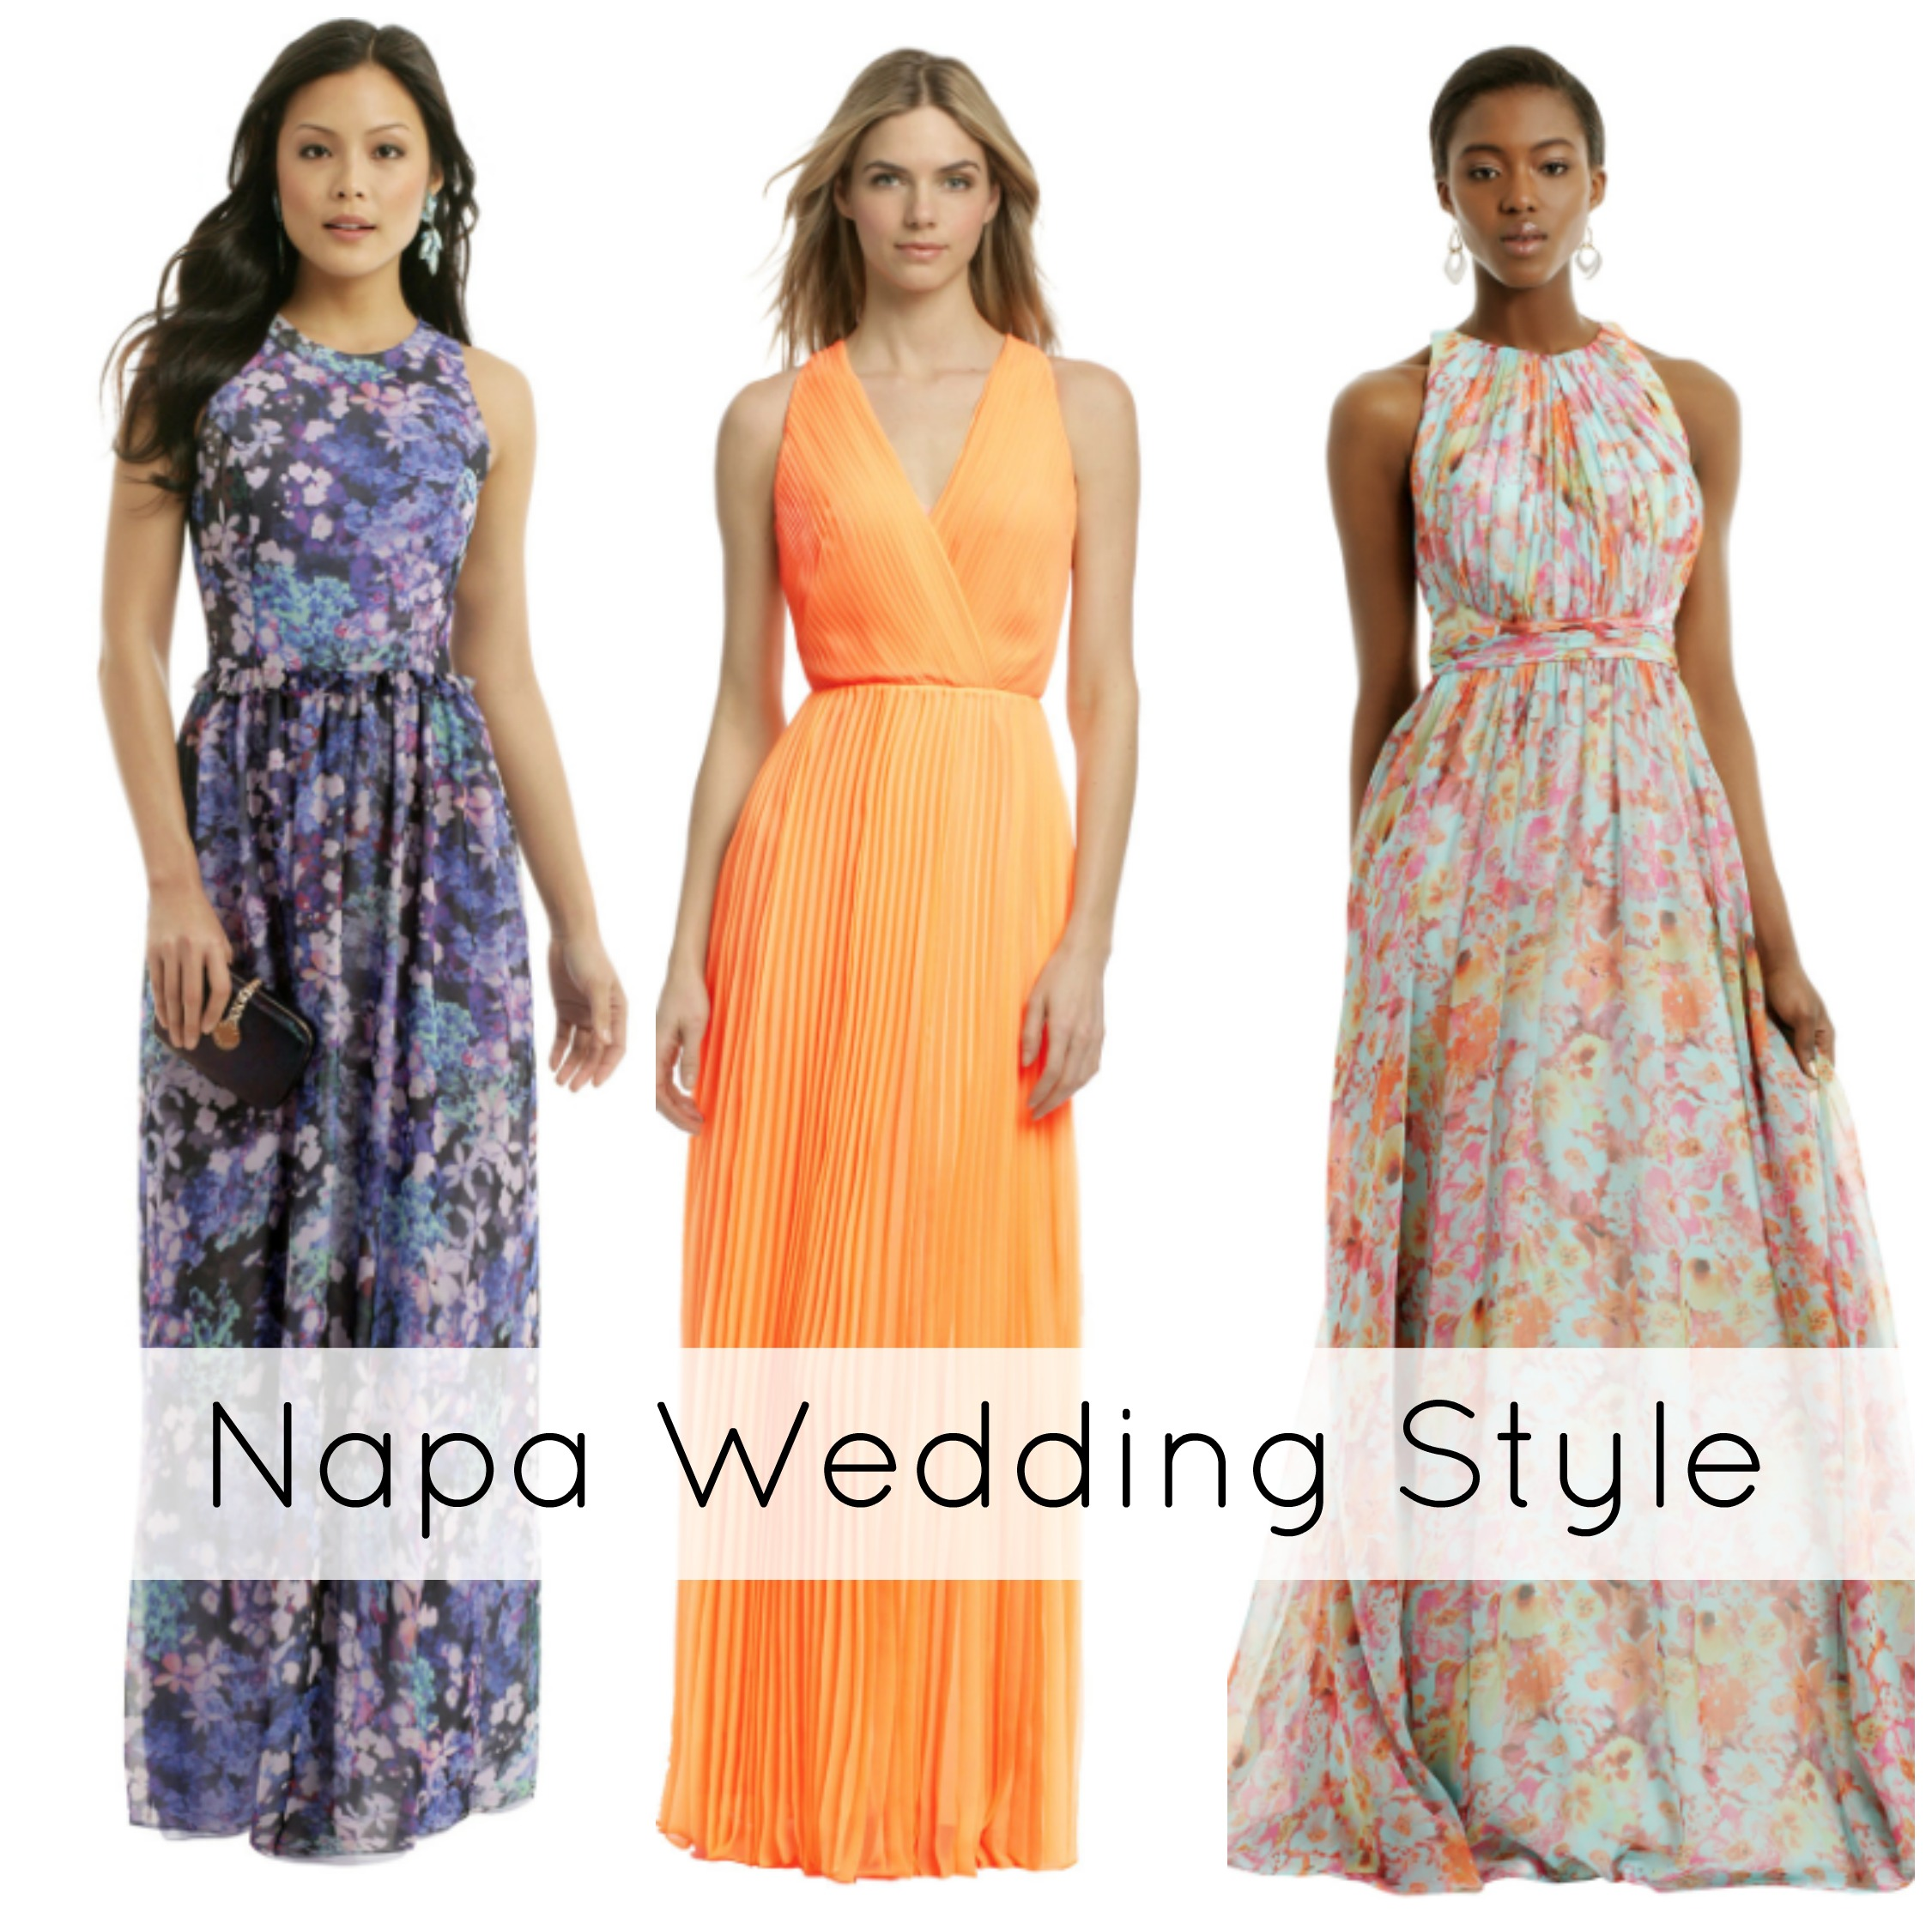 What To Wear To A Napa Wedding